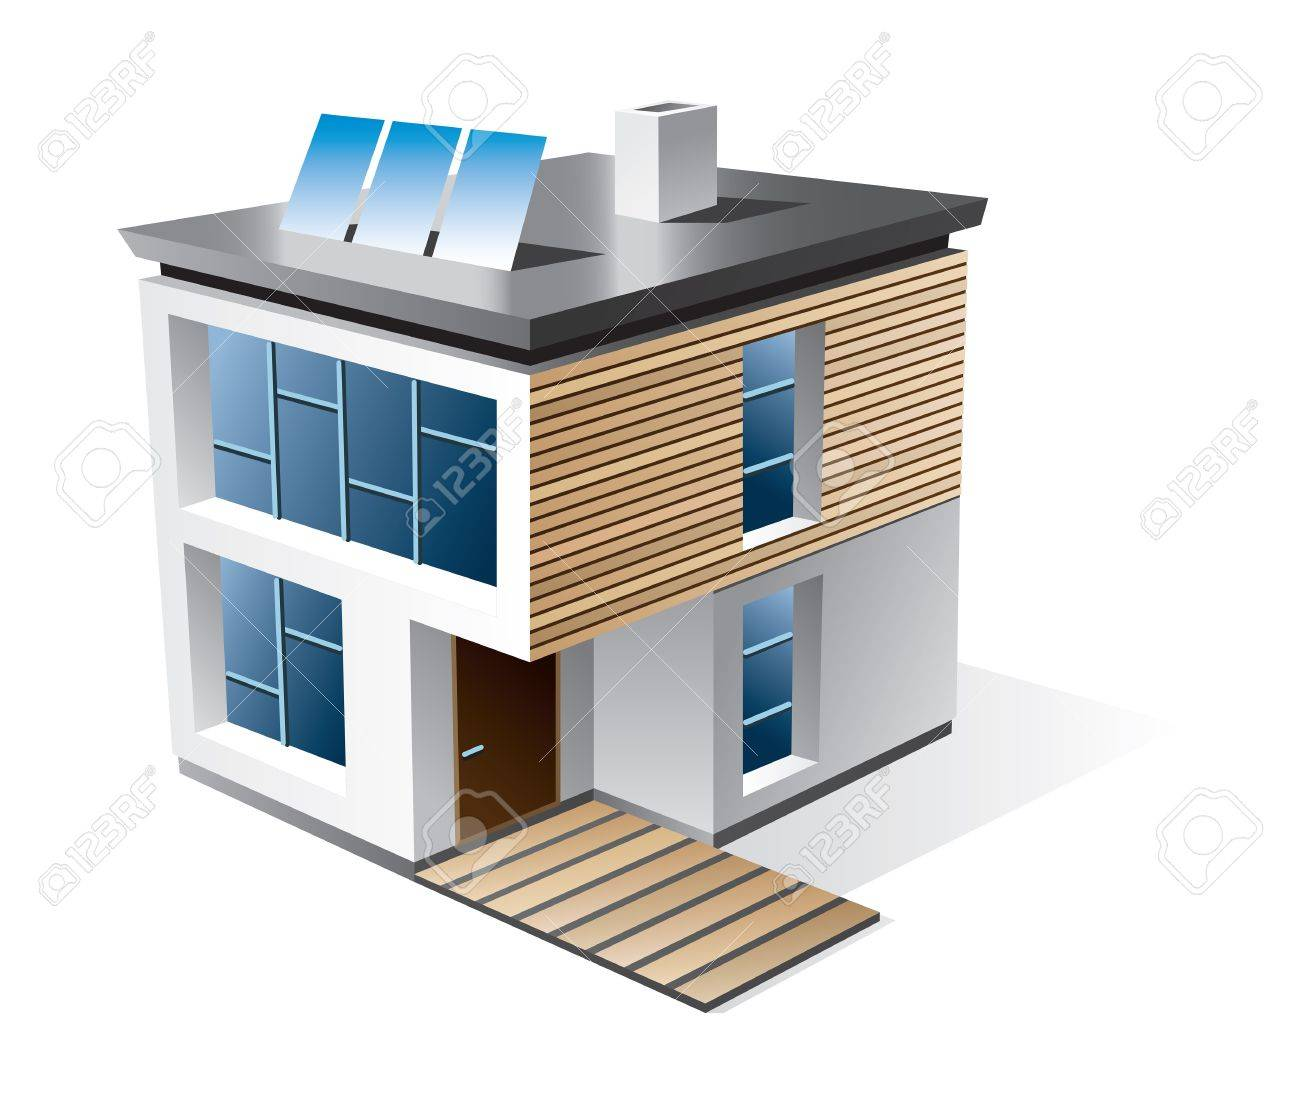 Isolated 3d icon of modern family house with wood facade Stock Vector - 14480681